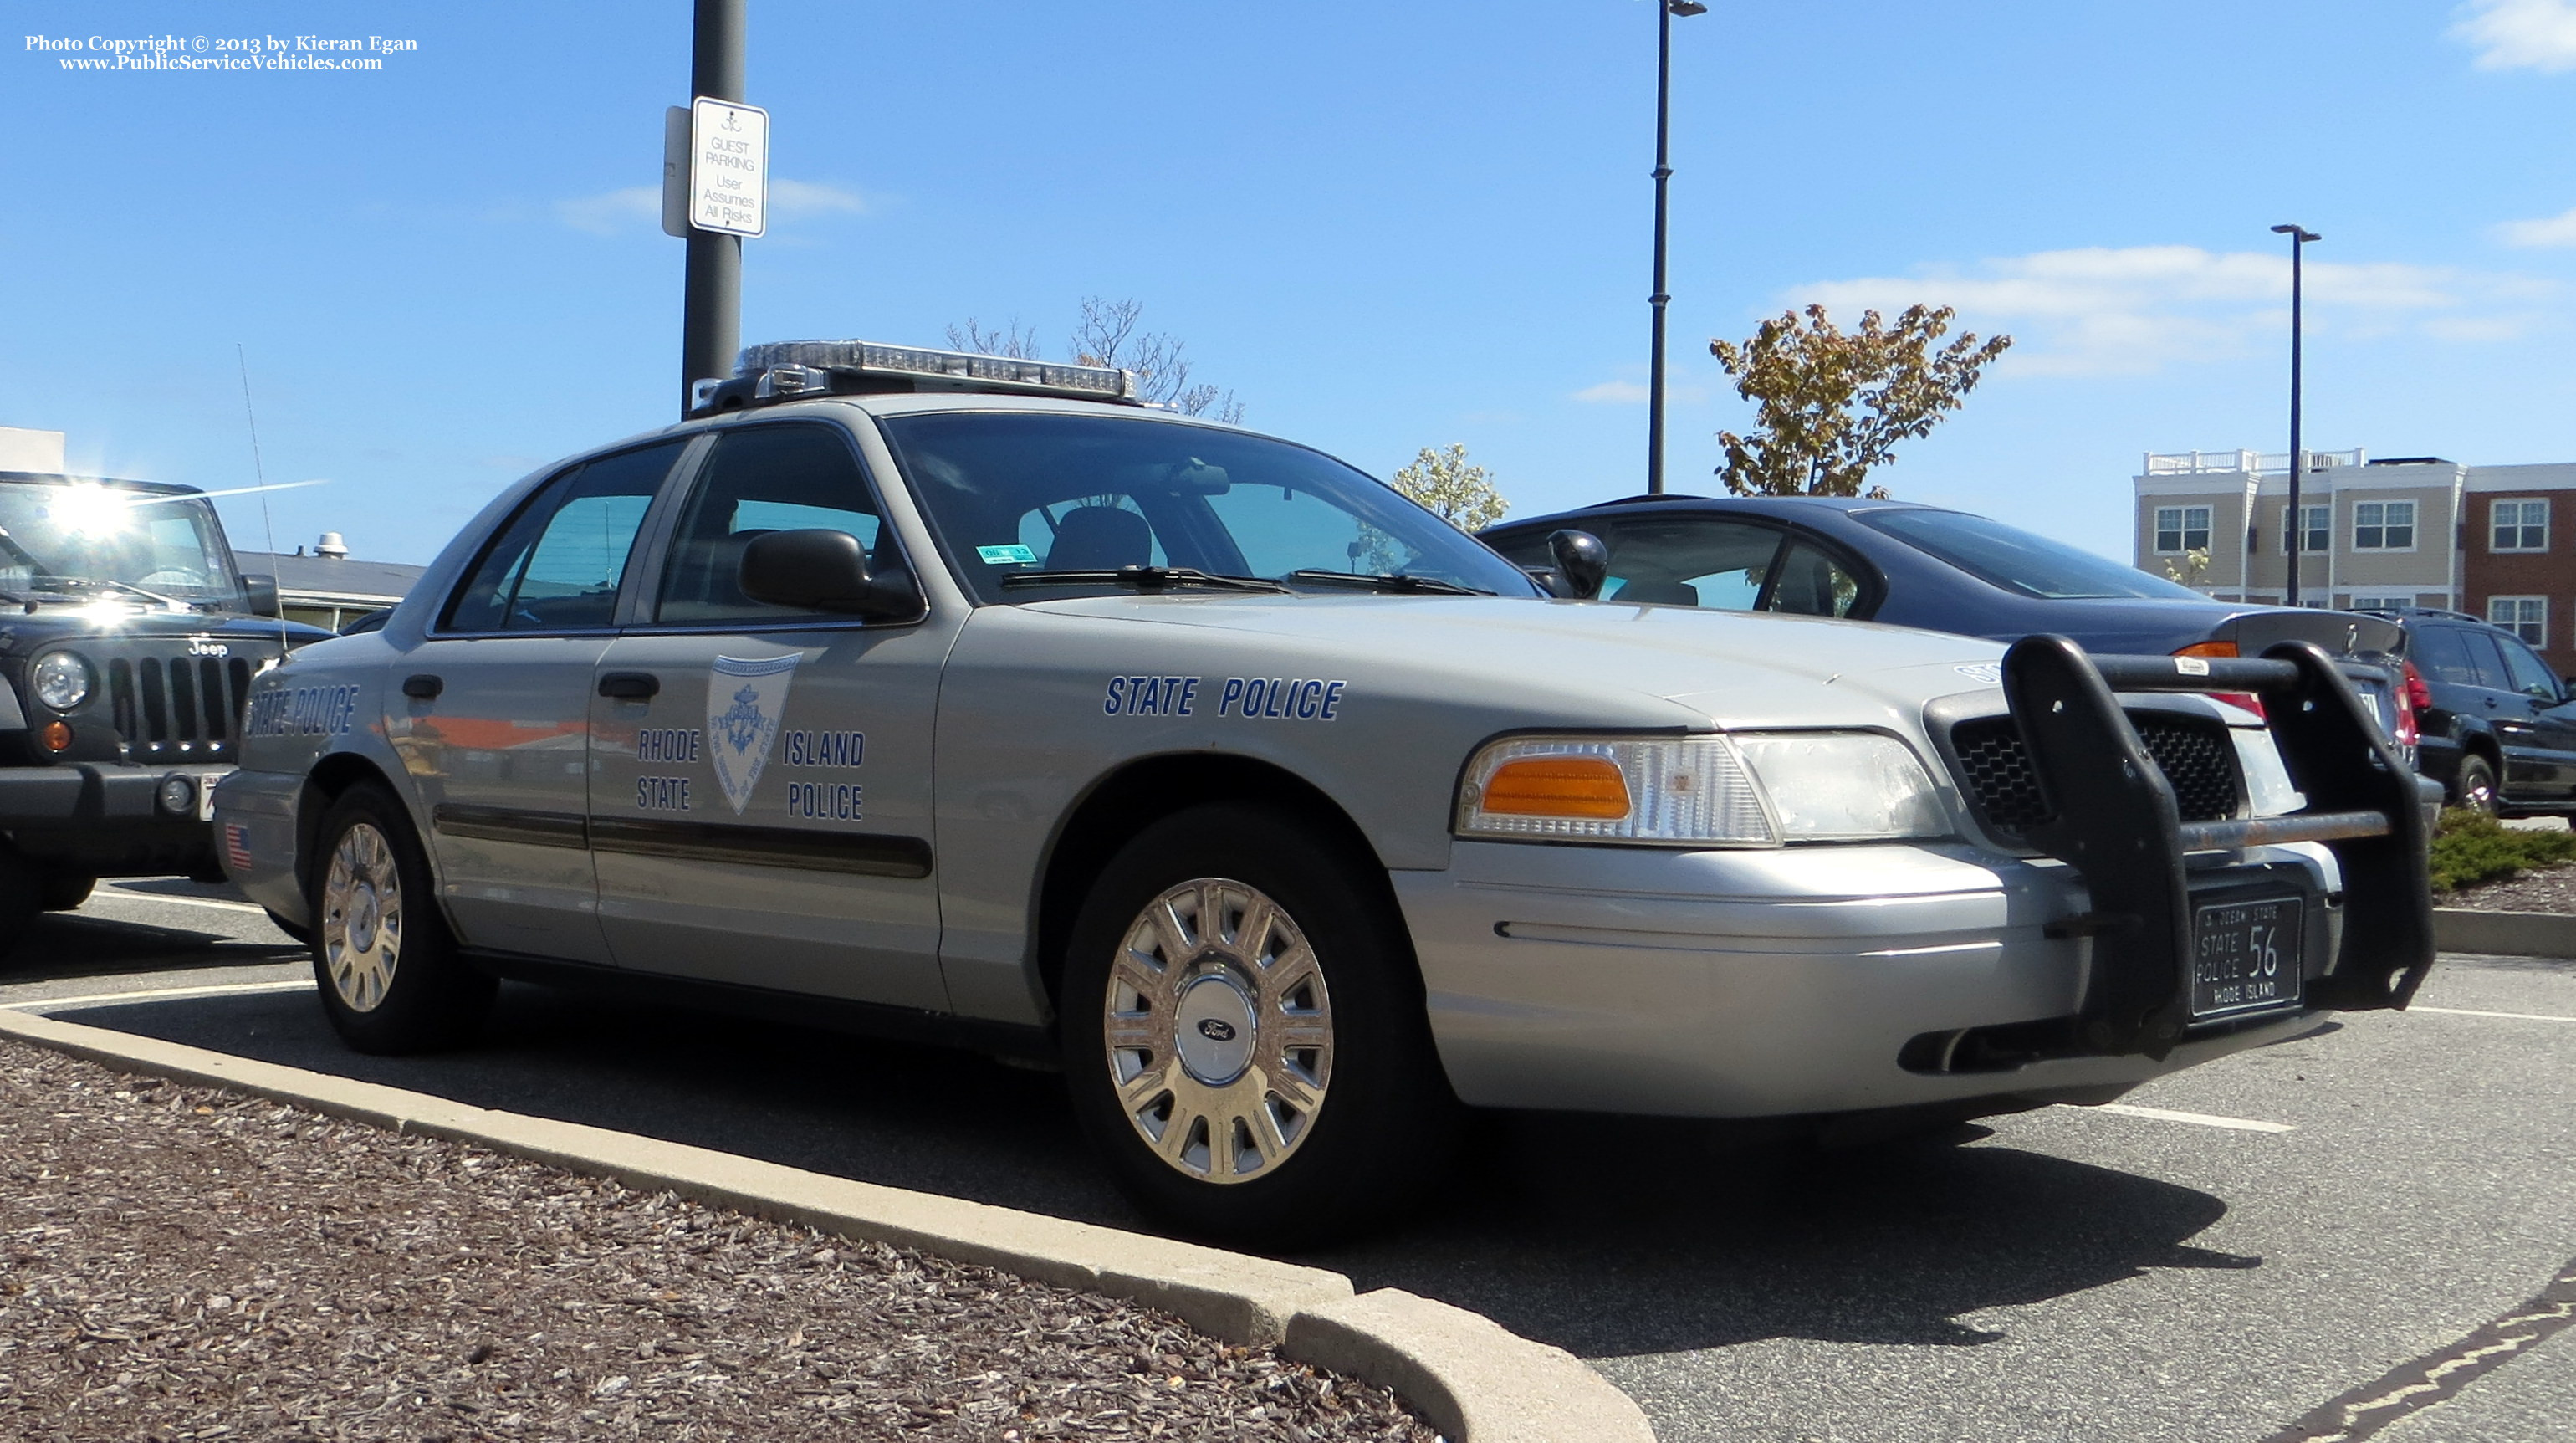 A photo  of Rhode Island State Police             Cruiser 56, a 2003-2005 Ford Crown Victoria Police Interceptor             taken by Kieran Egan